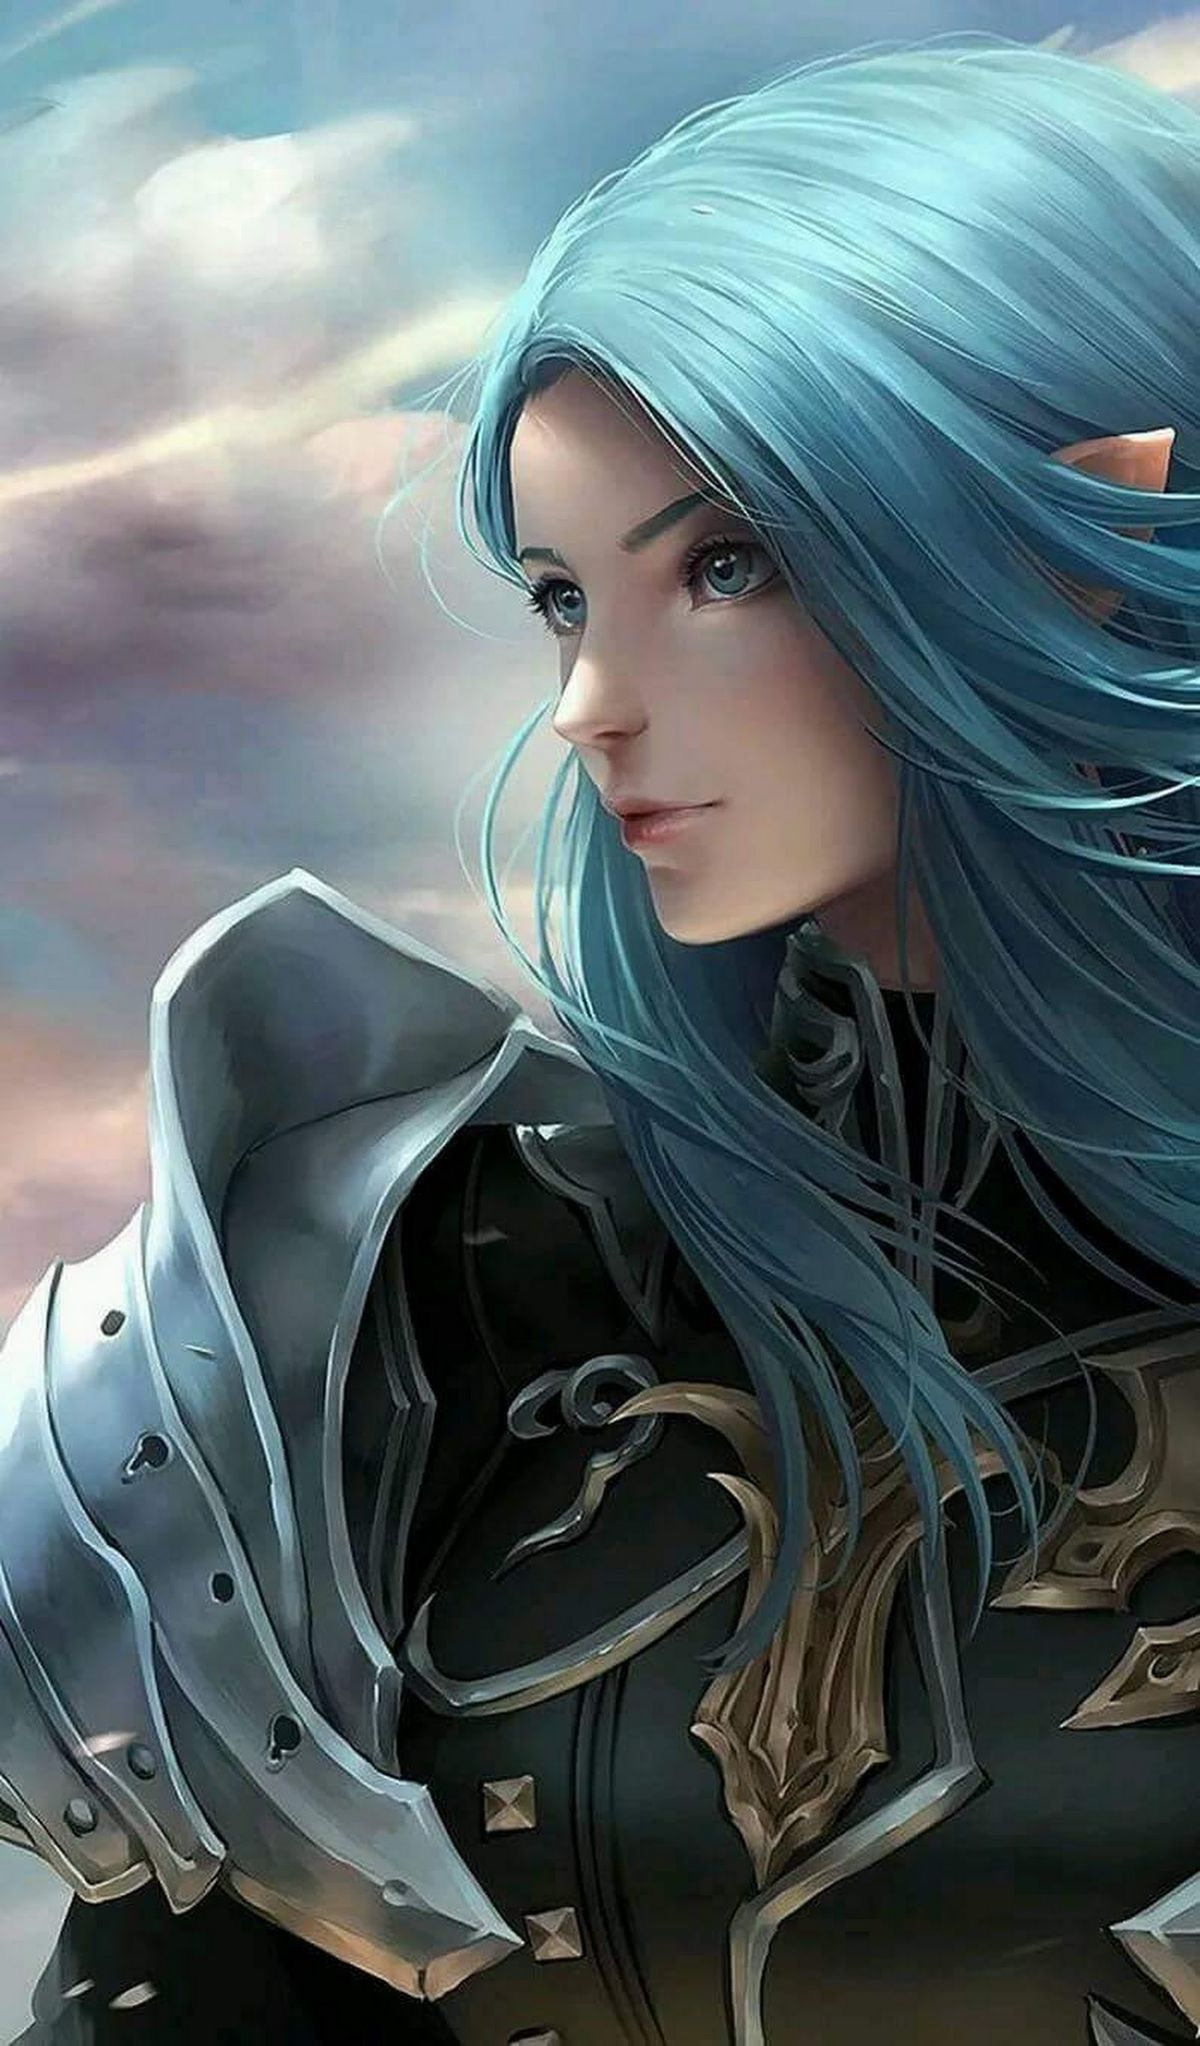 Female Elf With Blue Eyes And Hair As Well As Wearing A Suit Of Armor As Well As Shoulder Armor Warrior Girl Female Elf Art Girl